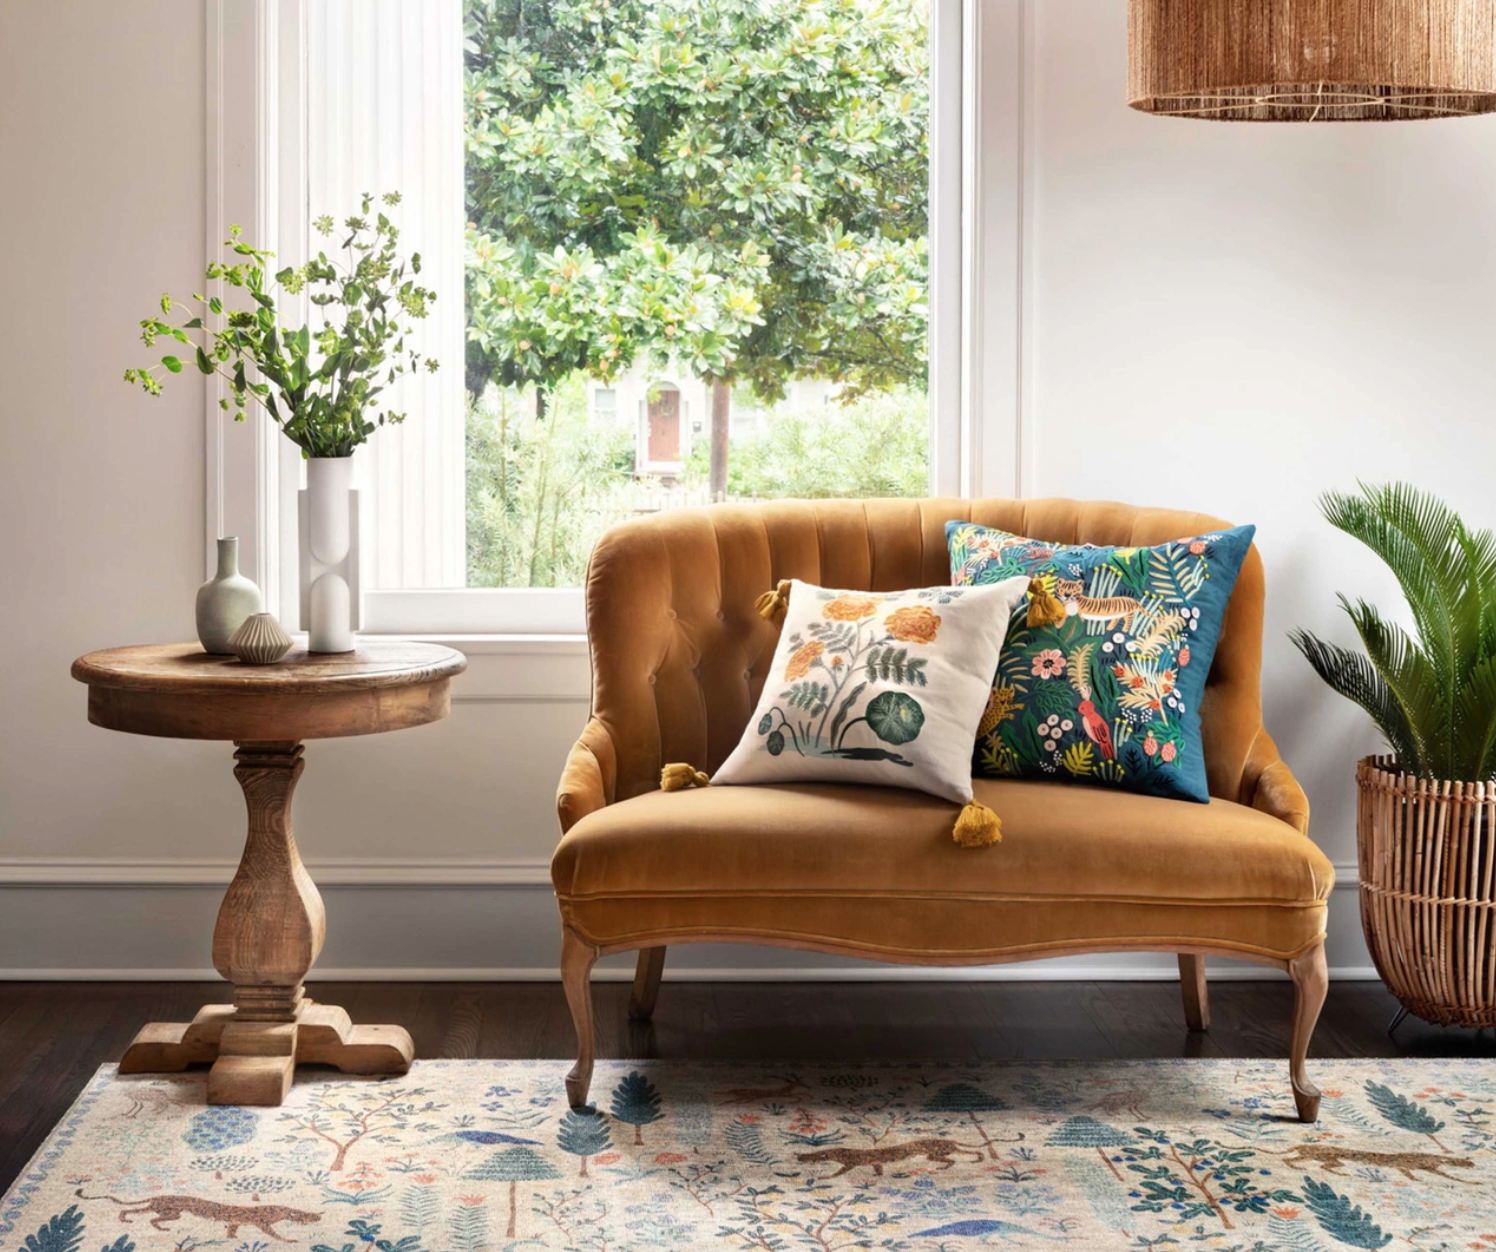 A cozy living room with wide open windows, lovely wooden furniture, a comfy loveseat, and floral throw pillows